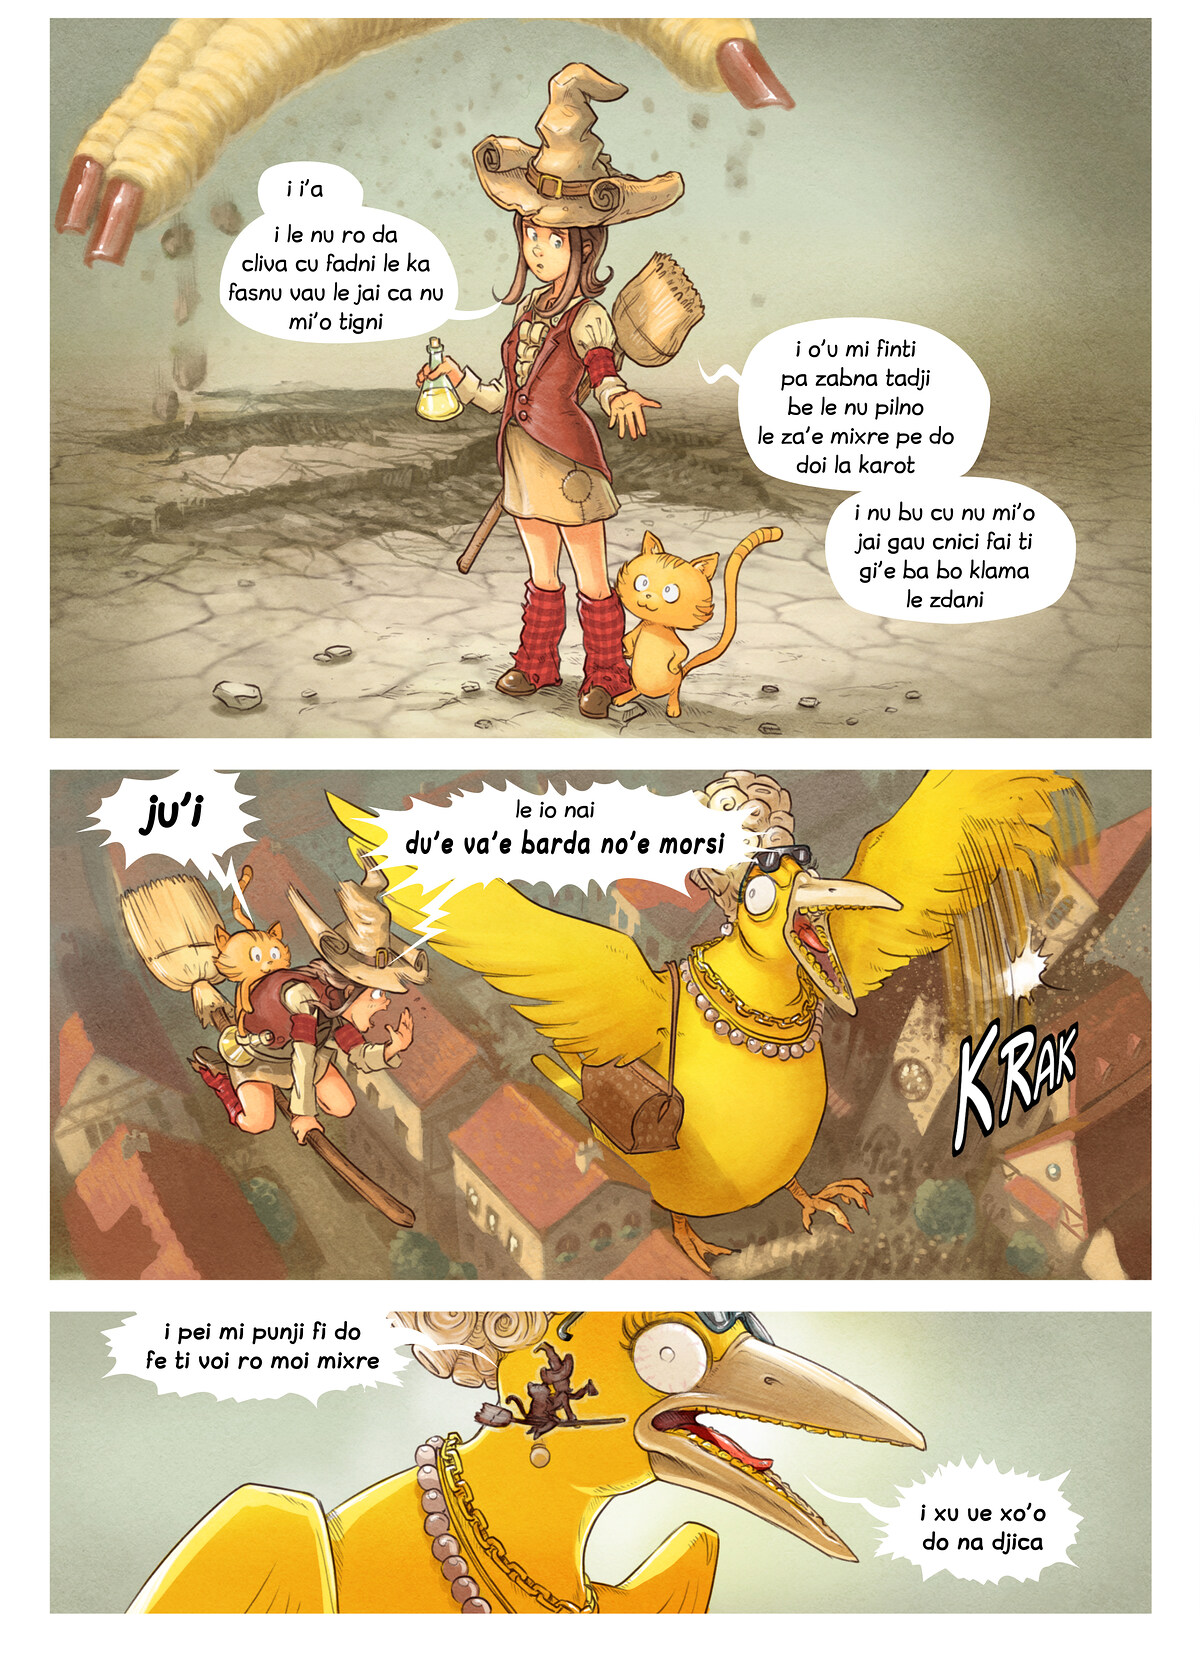 A webcomic page of Pepper&Carrot, pagbu 6 [jb], papri 8